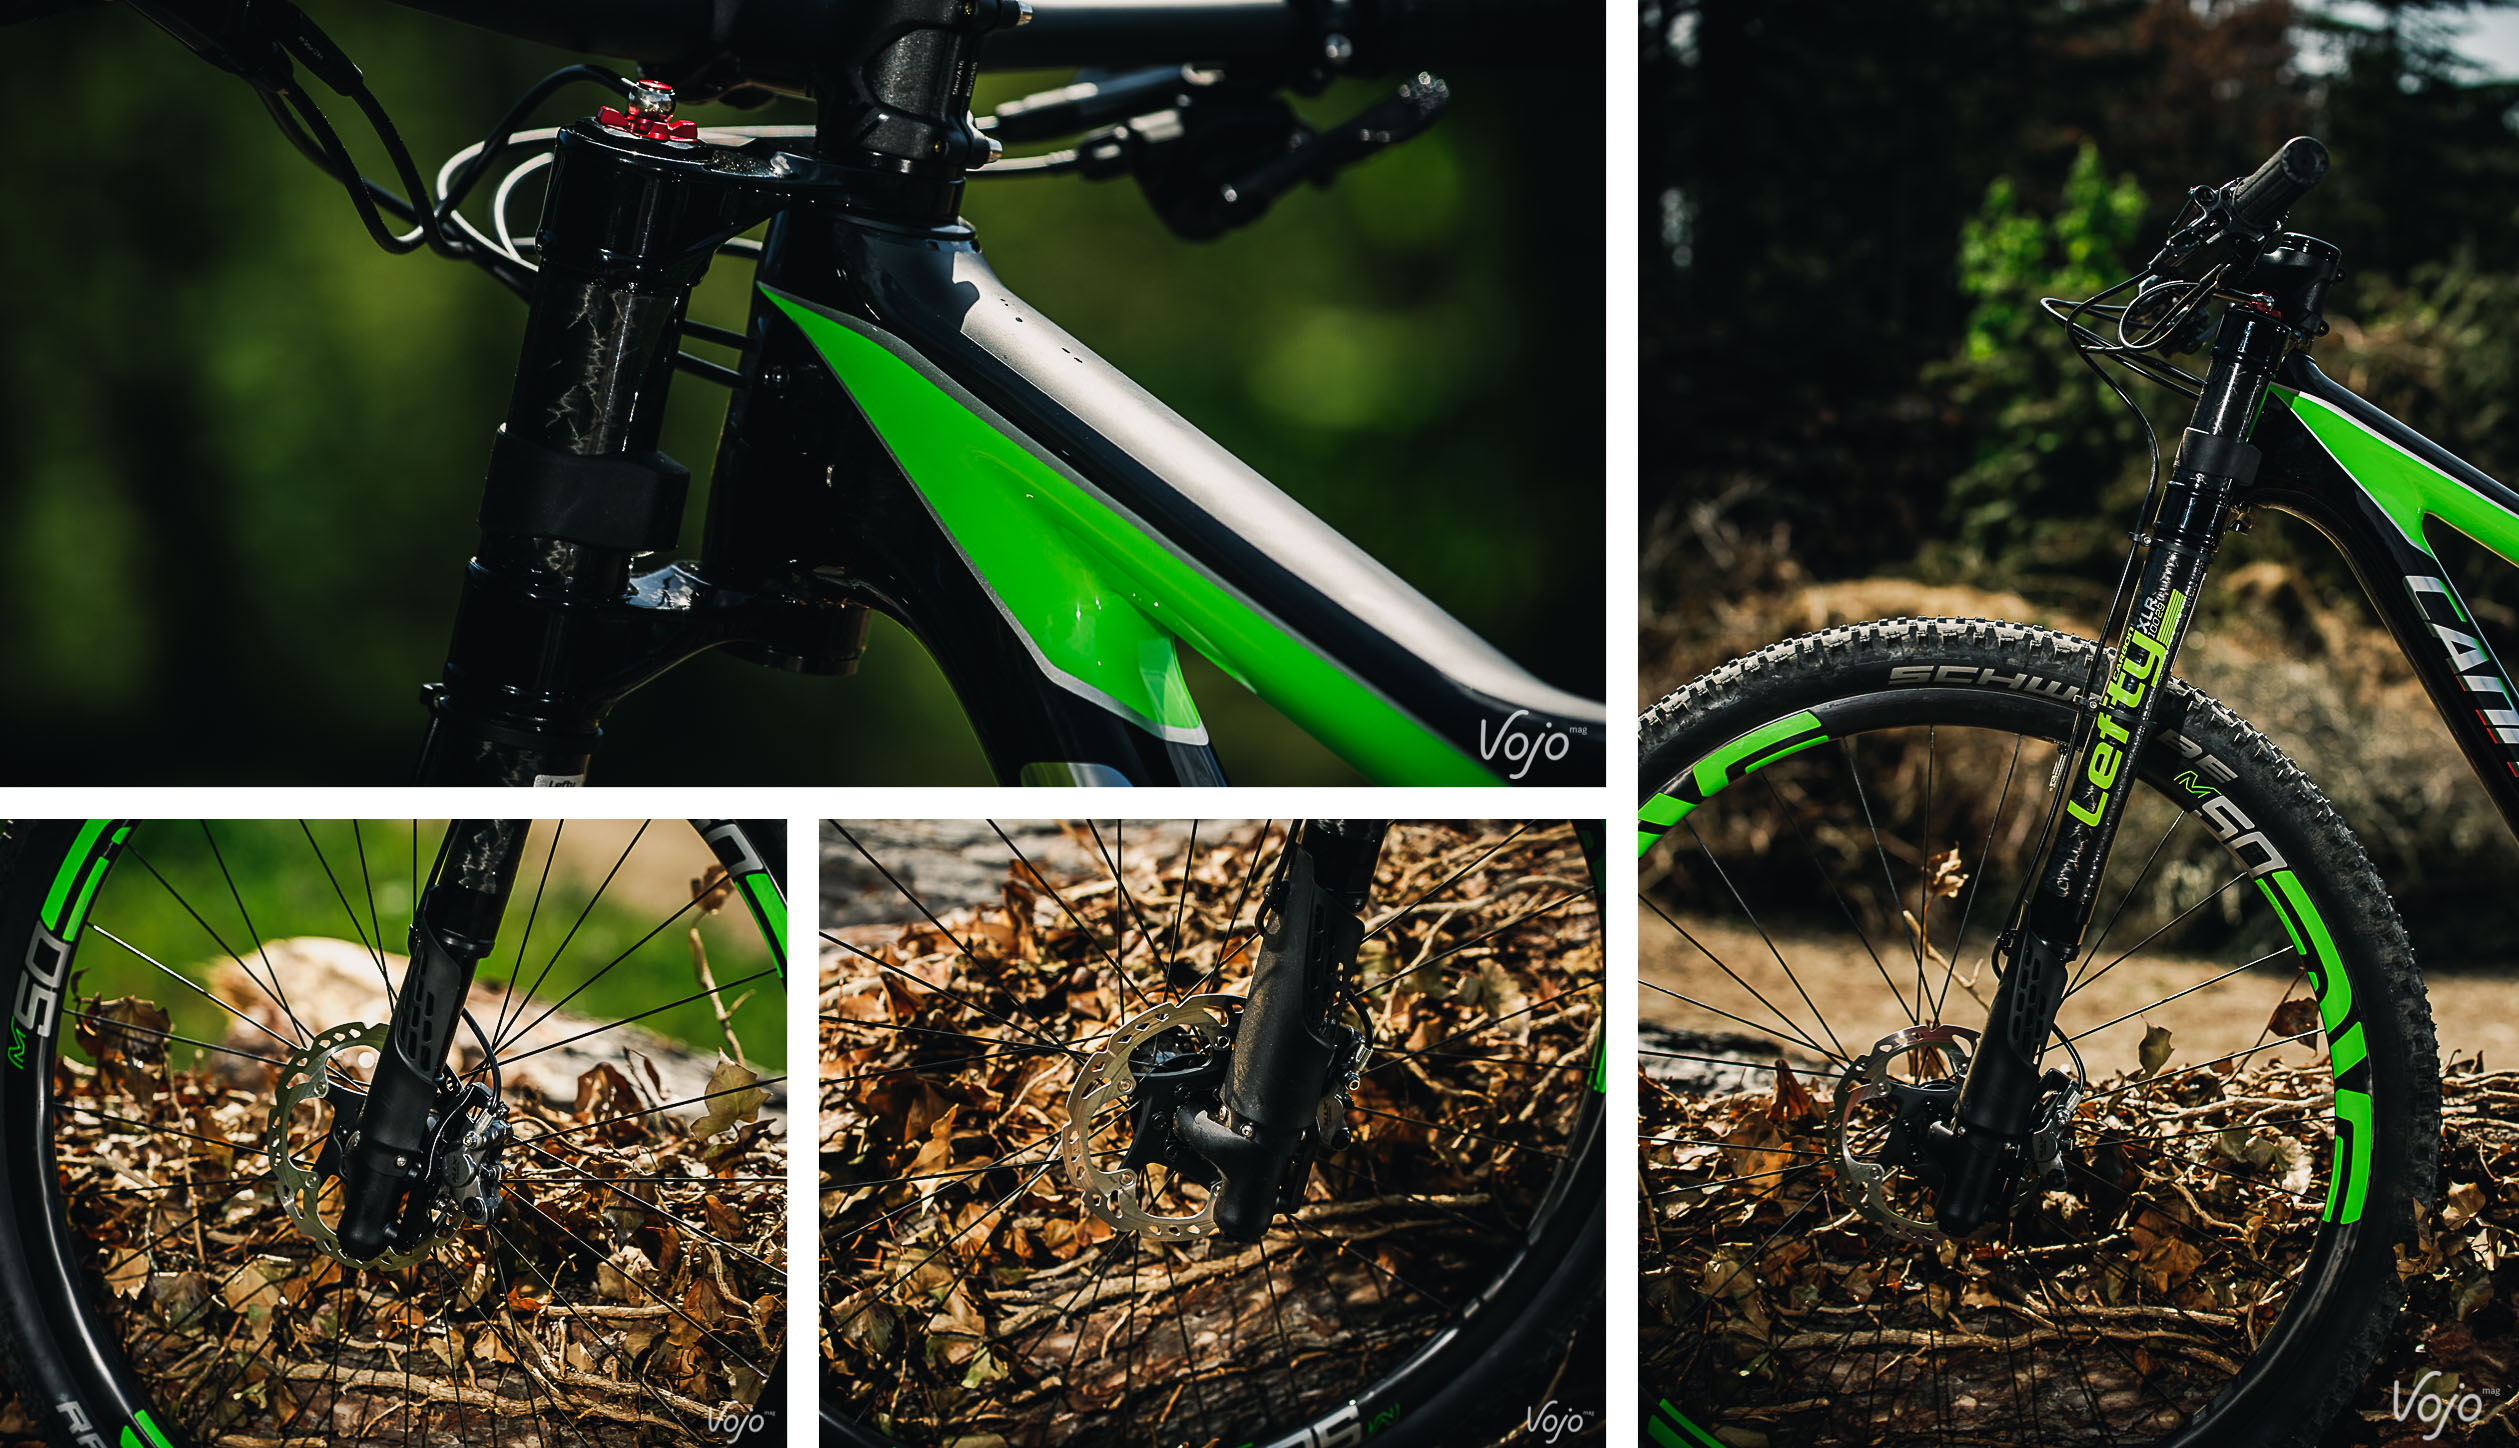 16-Cannondale_Scalpel_2017_Copyright_OBeart_VojoMag-1